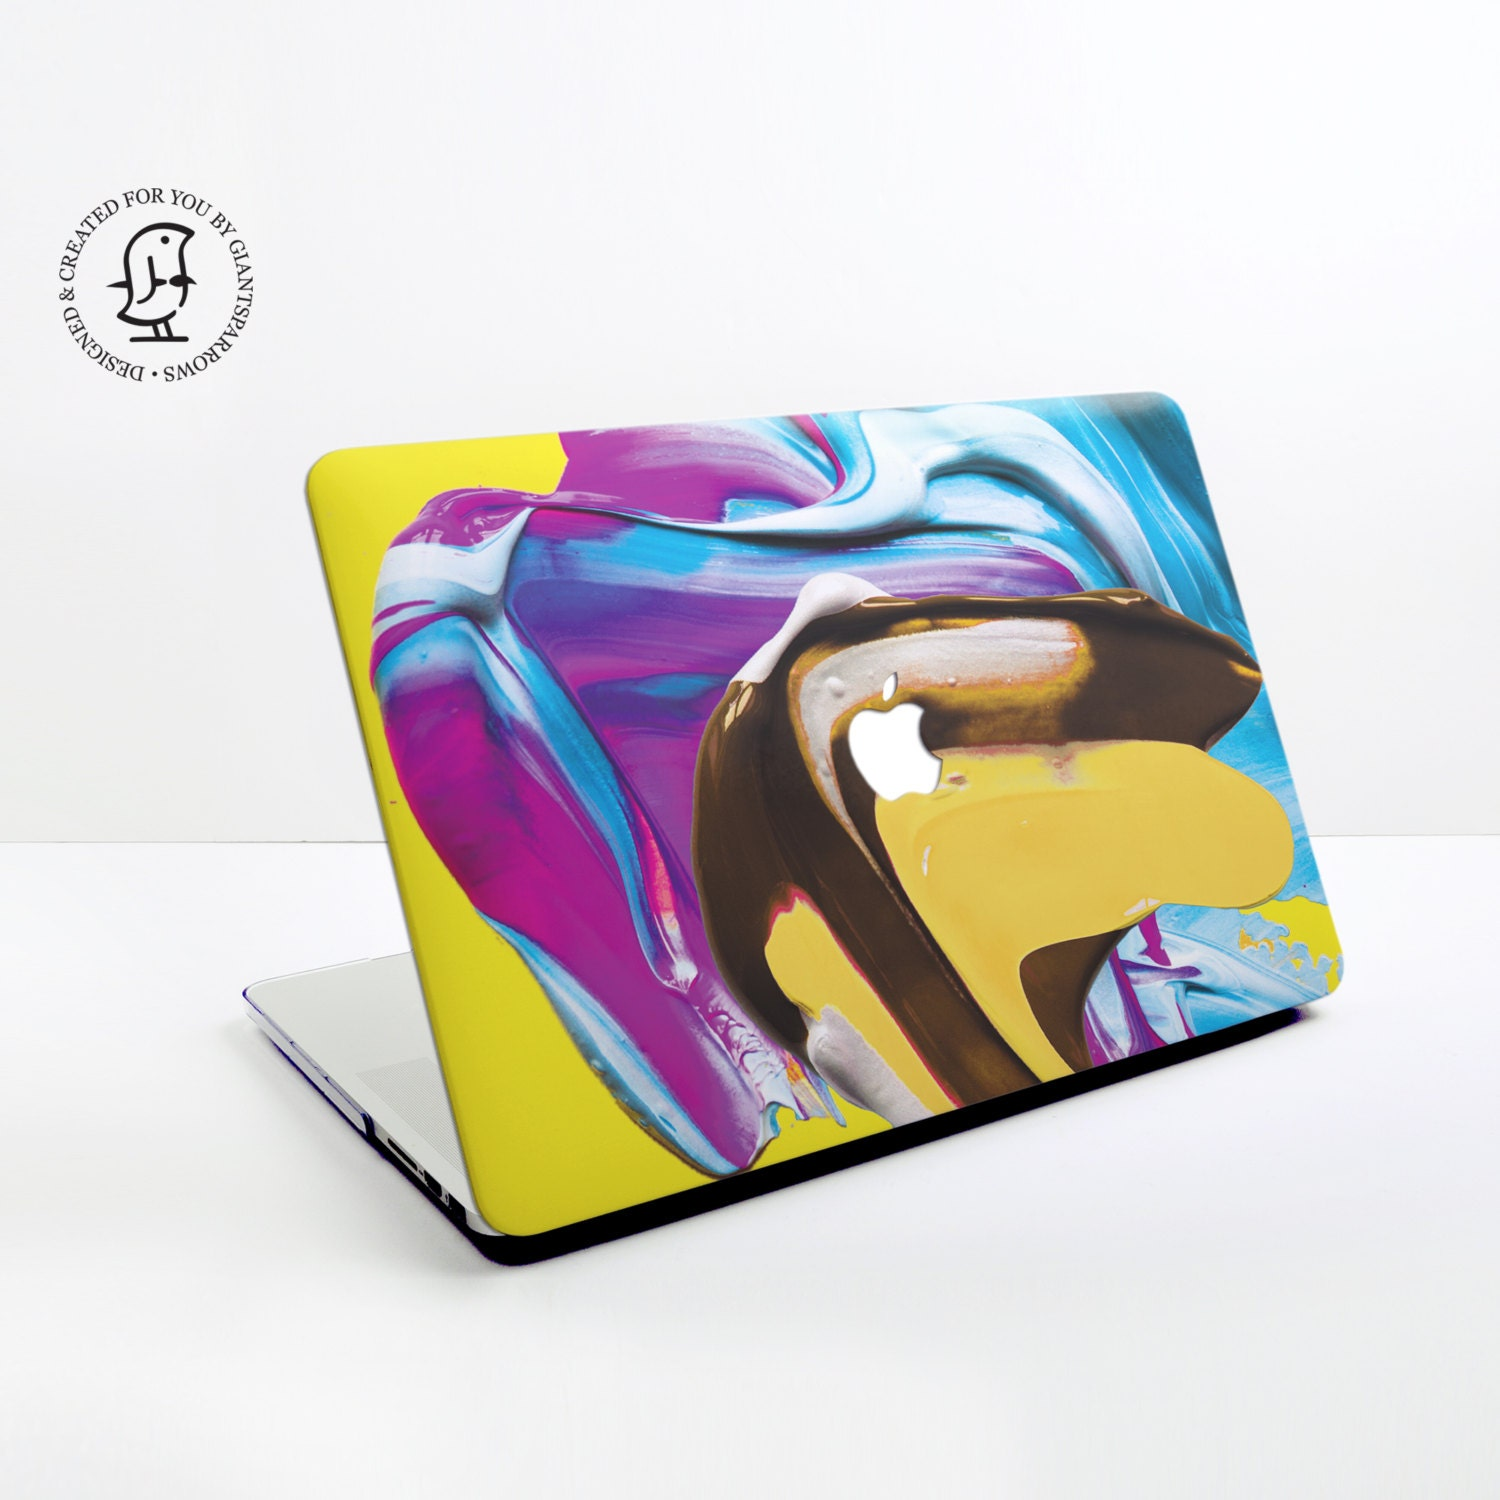 Lush Blue Yellow and Purple Mix paint Design  MacBook Hard Protective Case for MacBook Pro Air Air Retina Pro Retina  2016 MacBook Pro